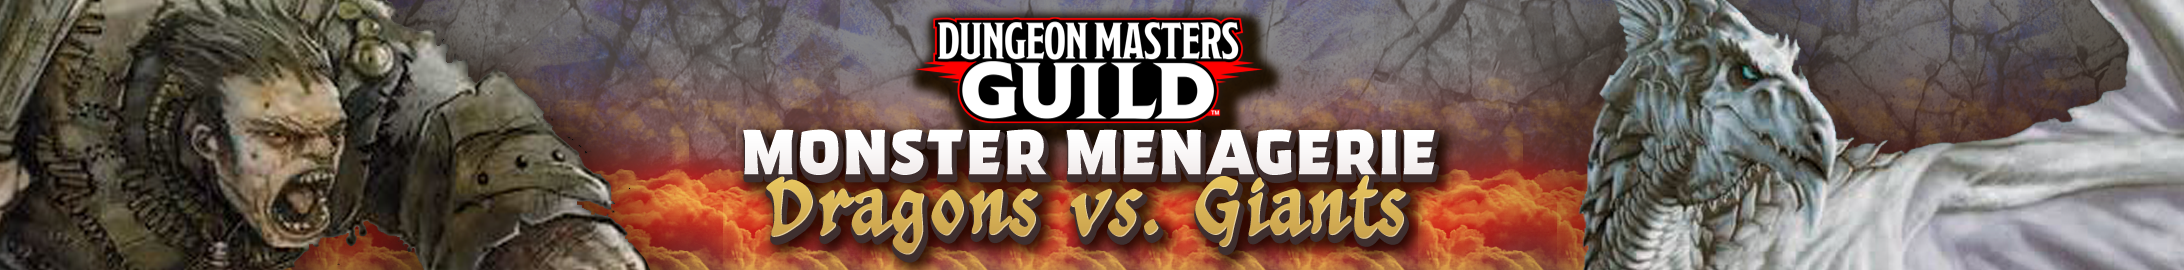 "Monster Menagerie ""Dragon vs Giant"" bundles @ Dungeon Masters Guild"